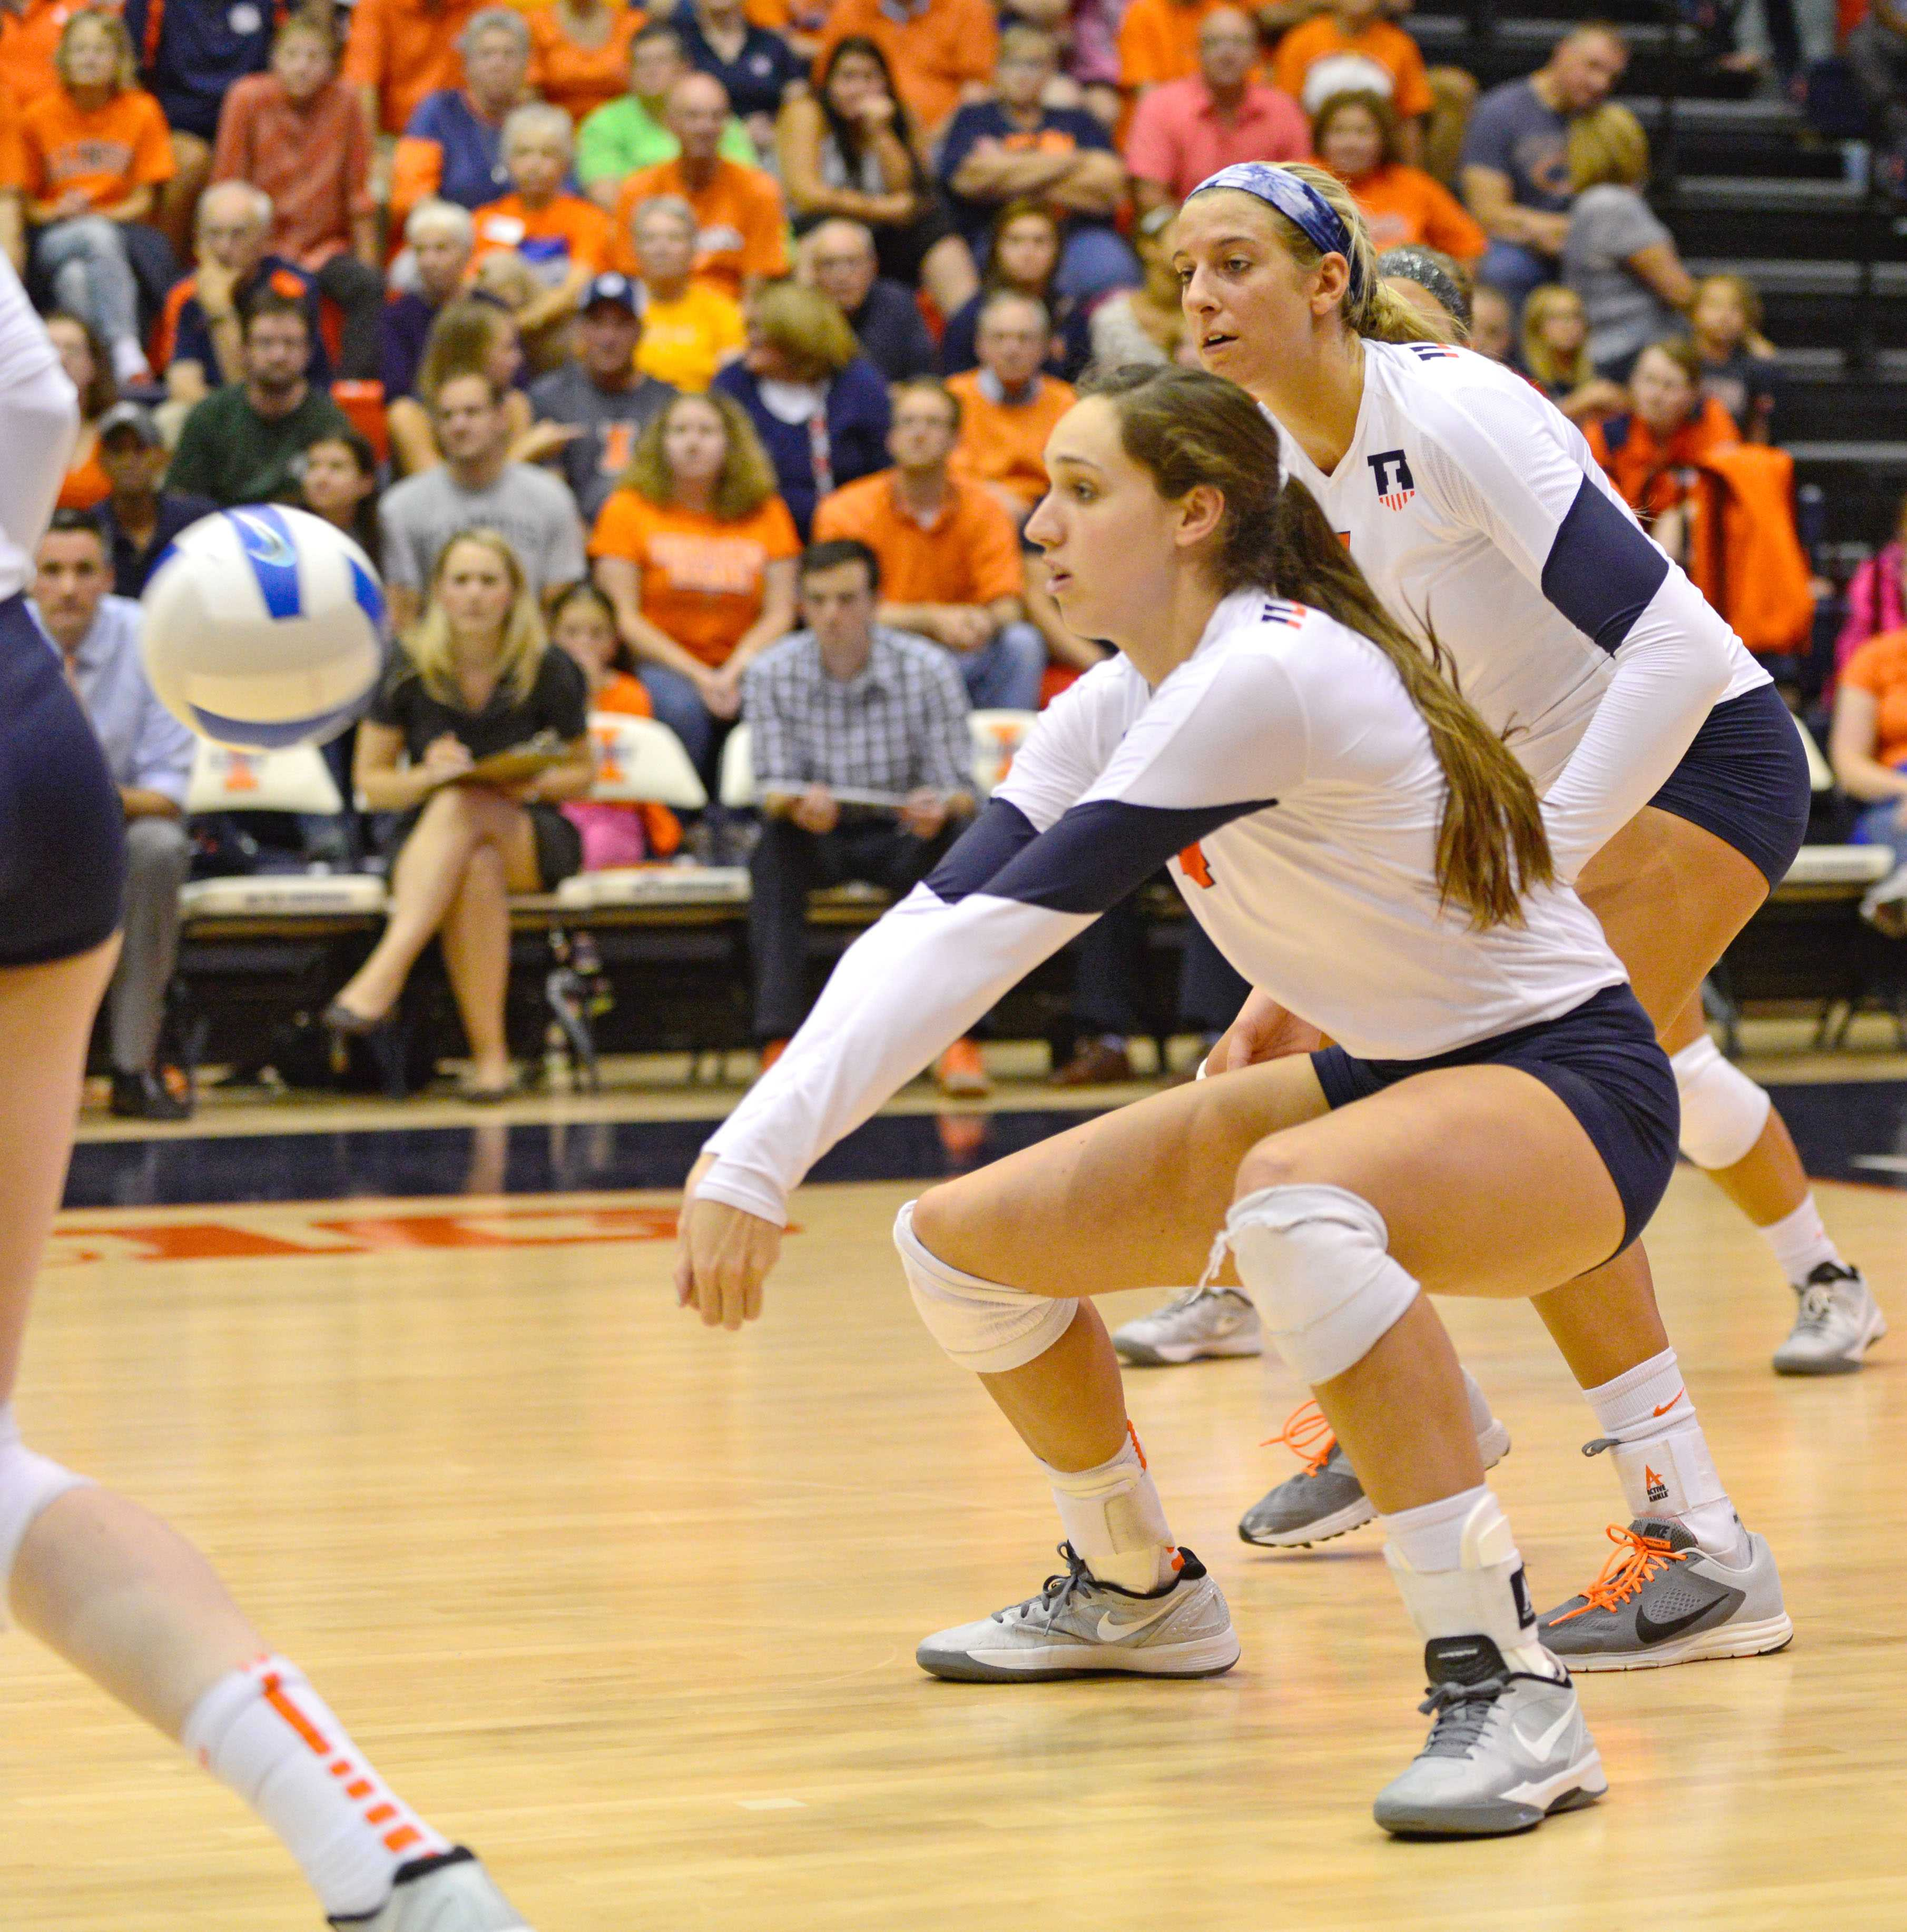 Illinois' Michelle Strizak (4) bumps the ball during the game against Minnesota at Huff Hall, on Wednesday, Oct. 1, 2014. The Illini won 3-0.